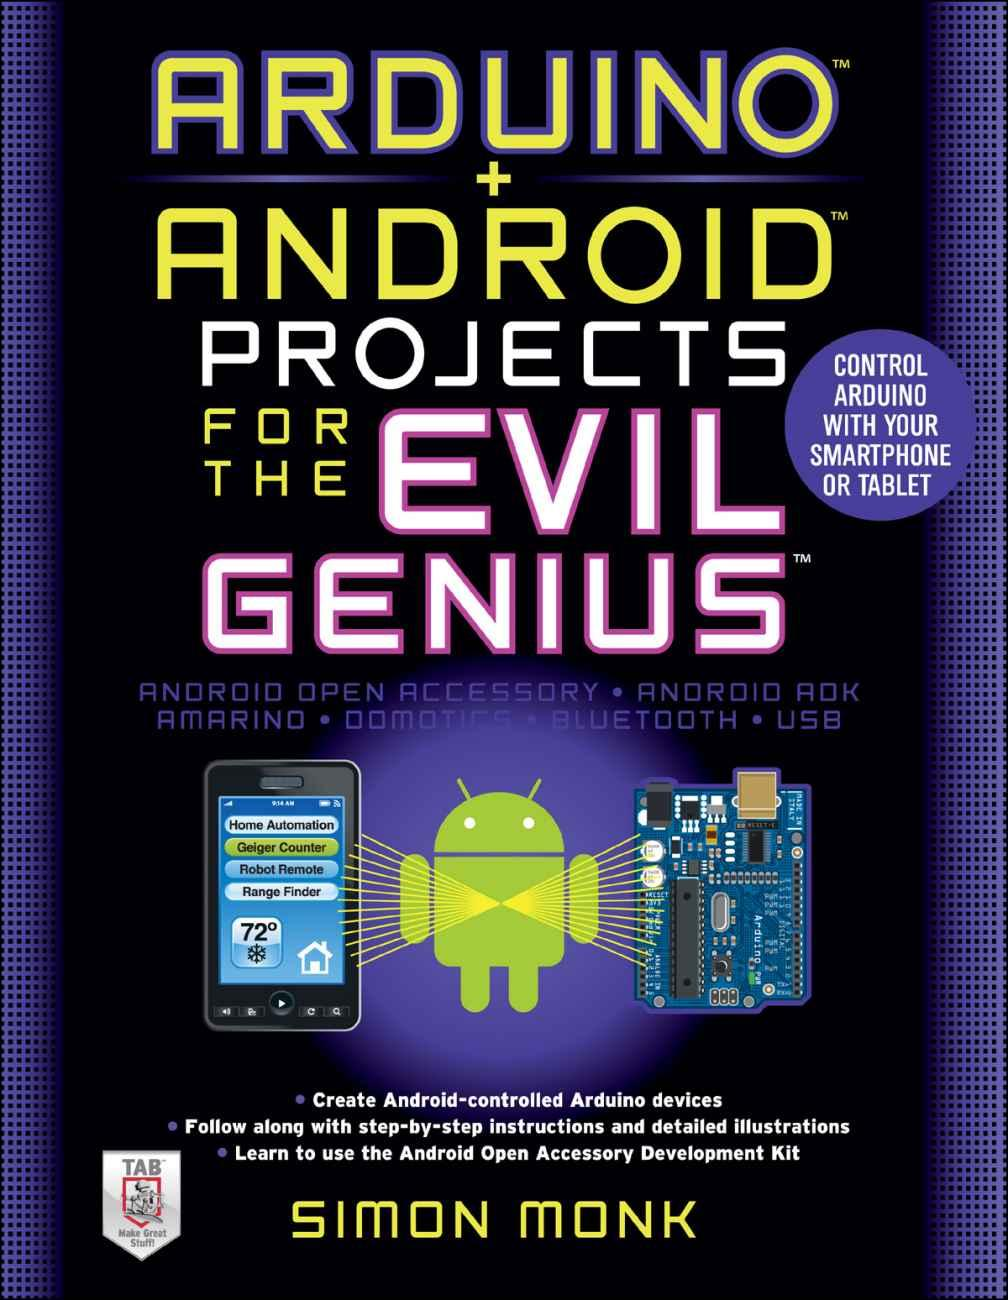 Arduino + Android Projects for the Evil Genius: Control Arduino with Your Smartphone or Tablet (repost)